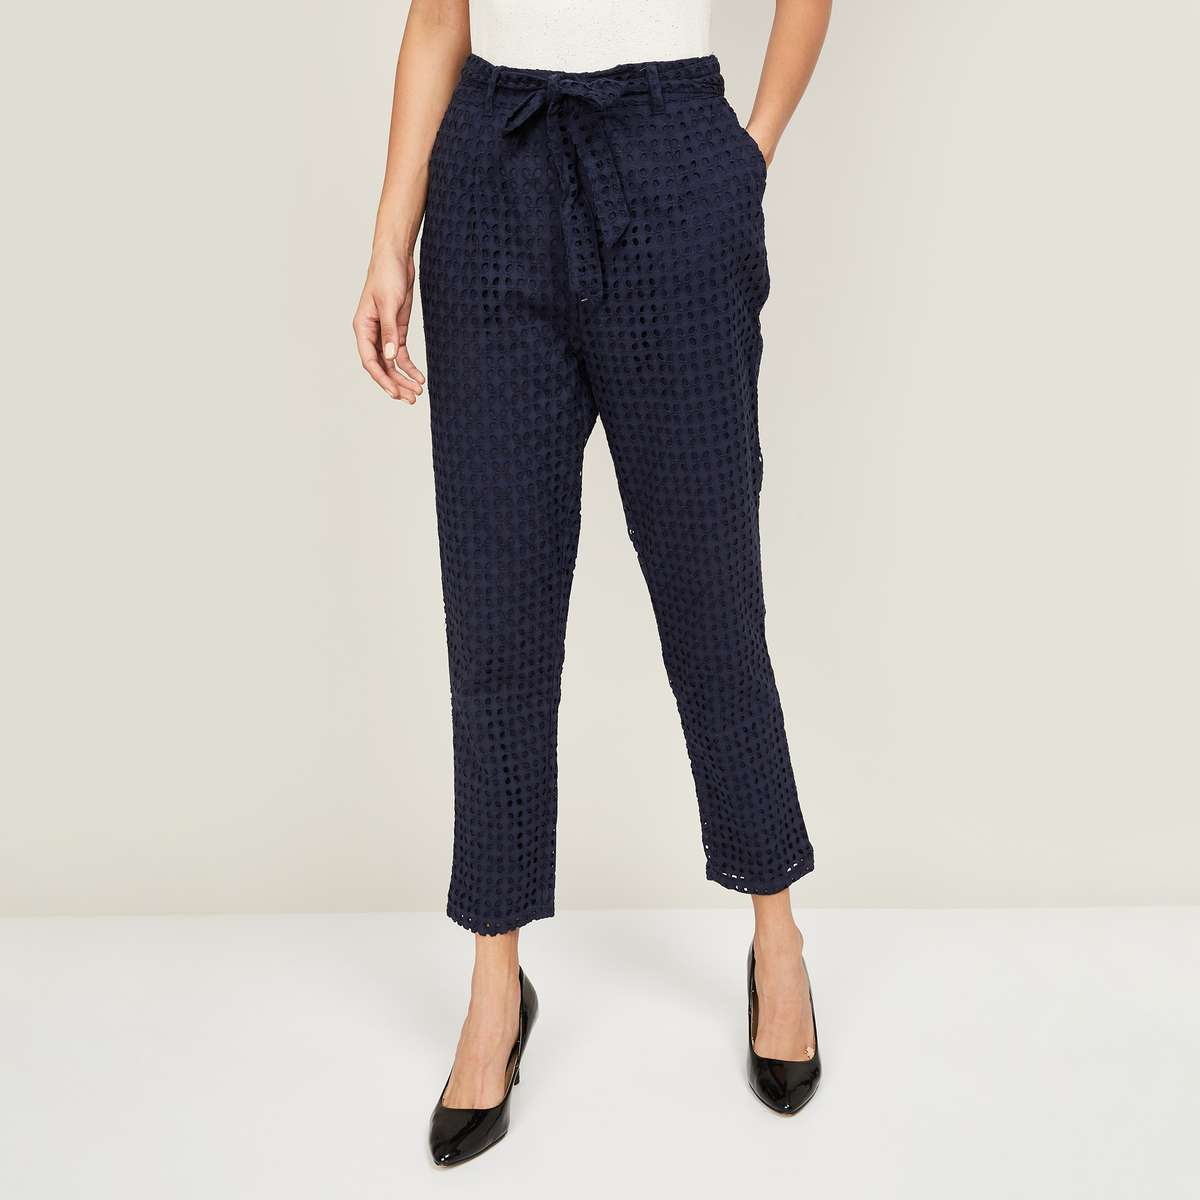 3.BOSSINI Women Embroidered Woven Trousers